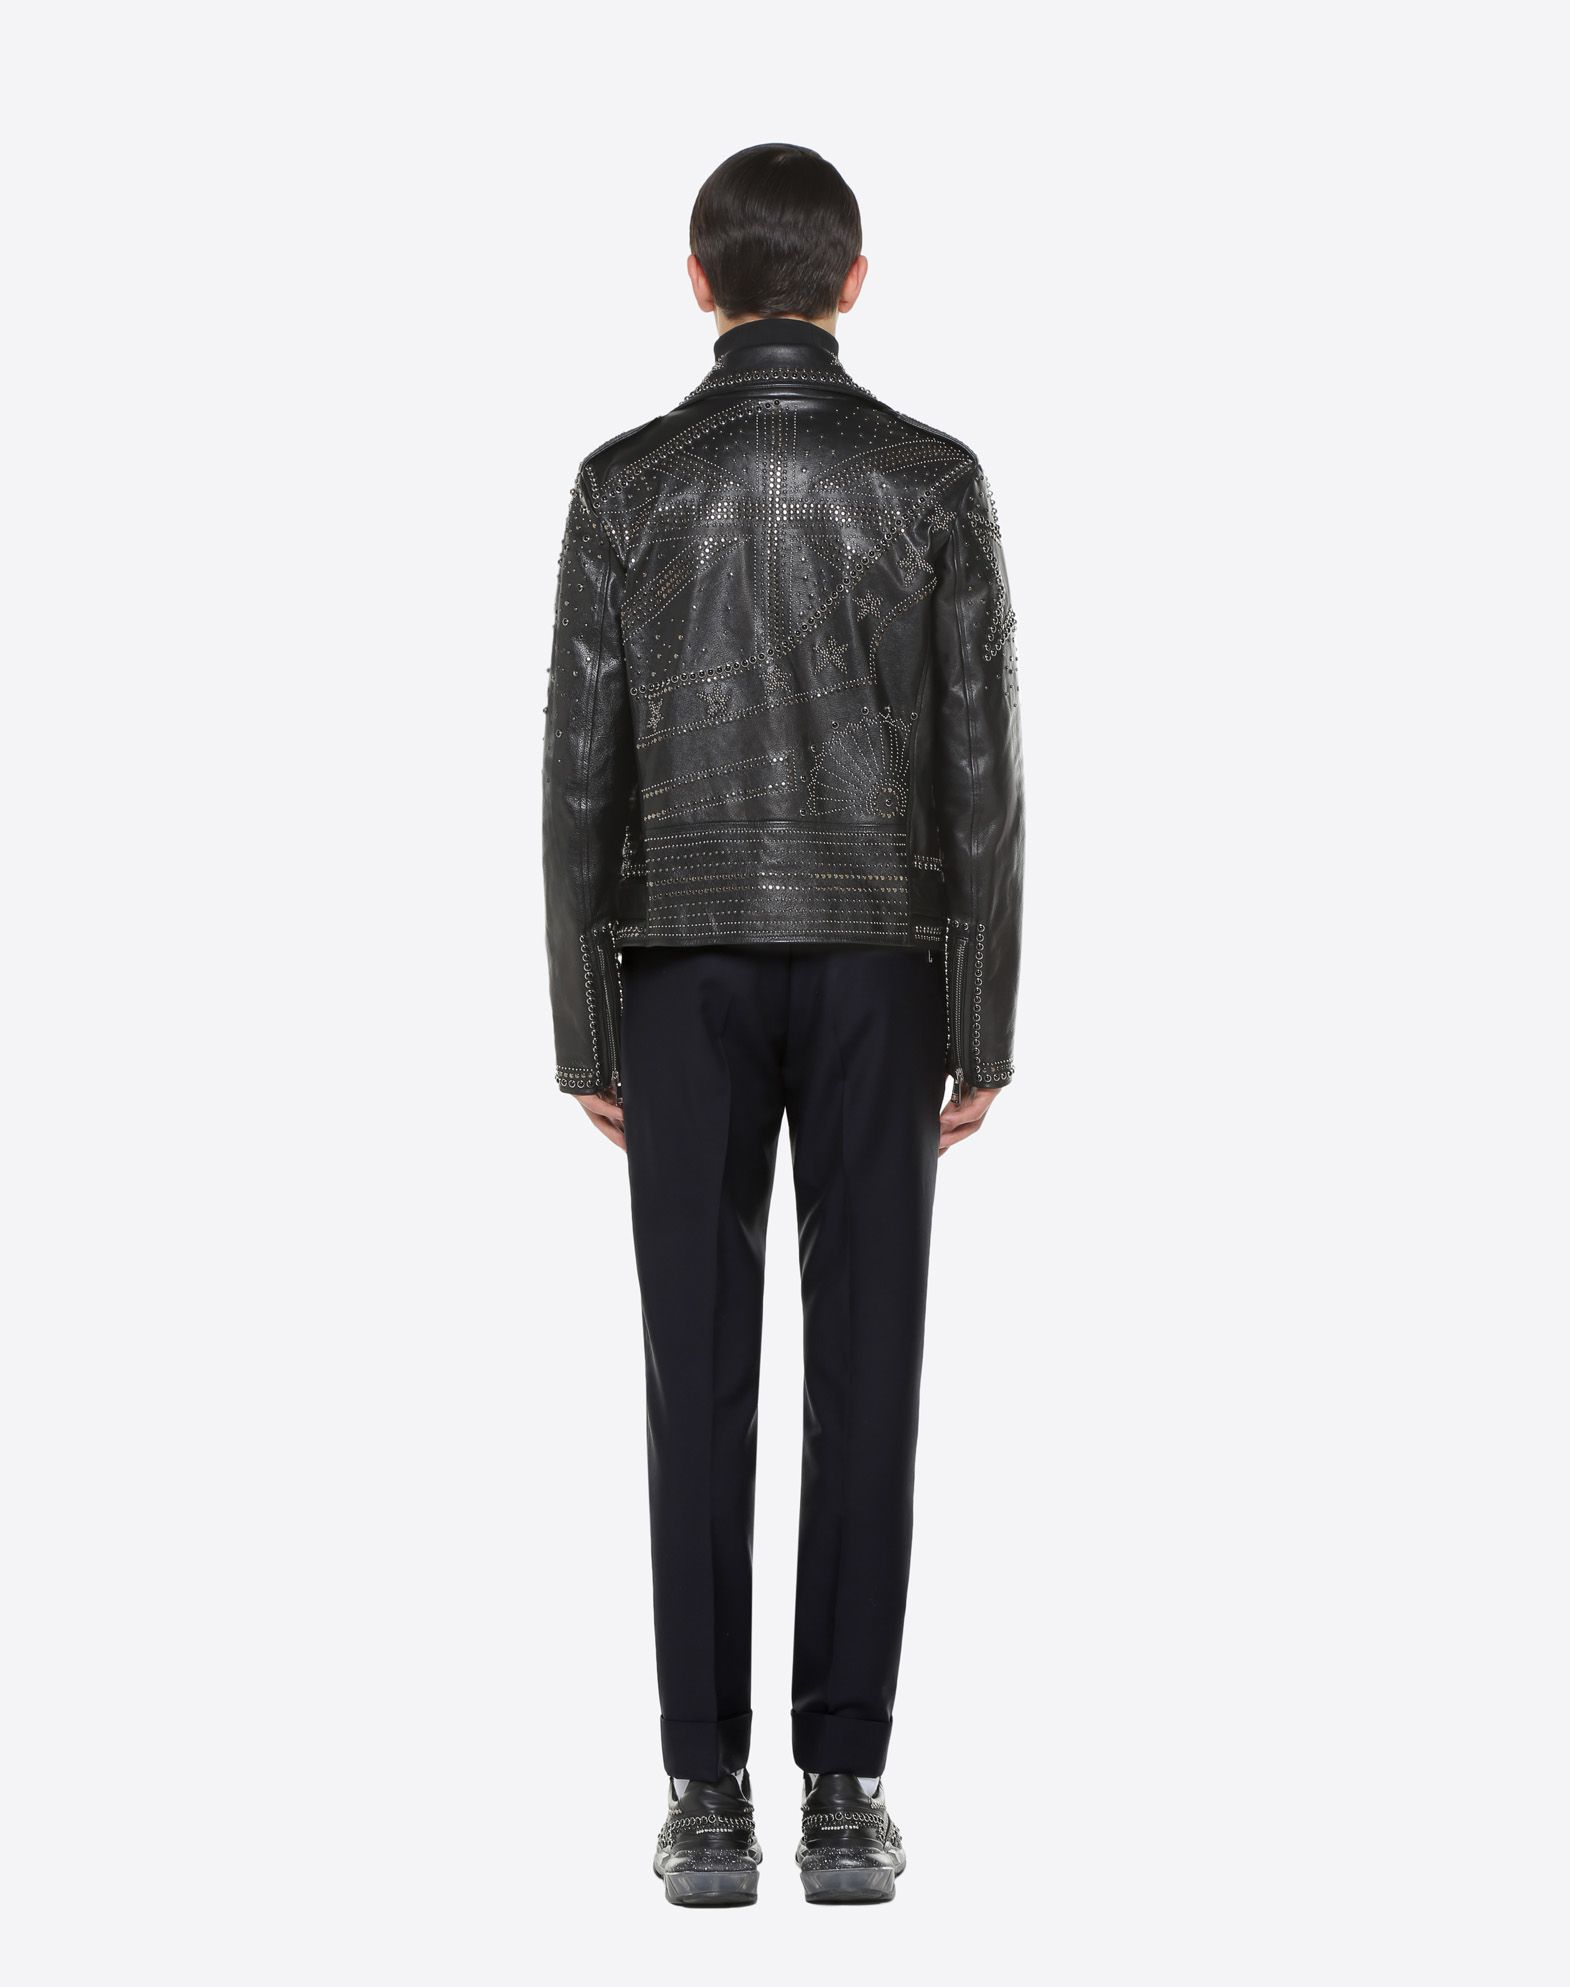 VALENTINO UOMO Biker jacket with metal and stud details JACKET U e